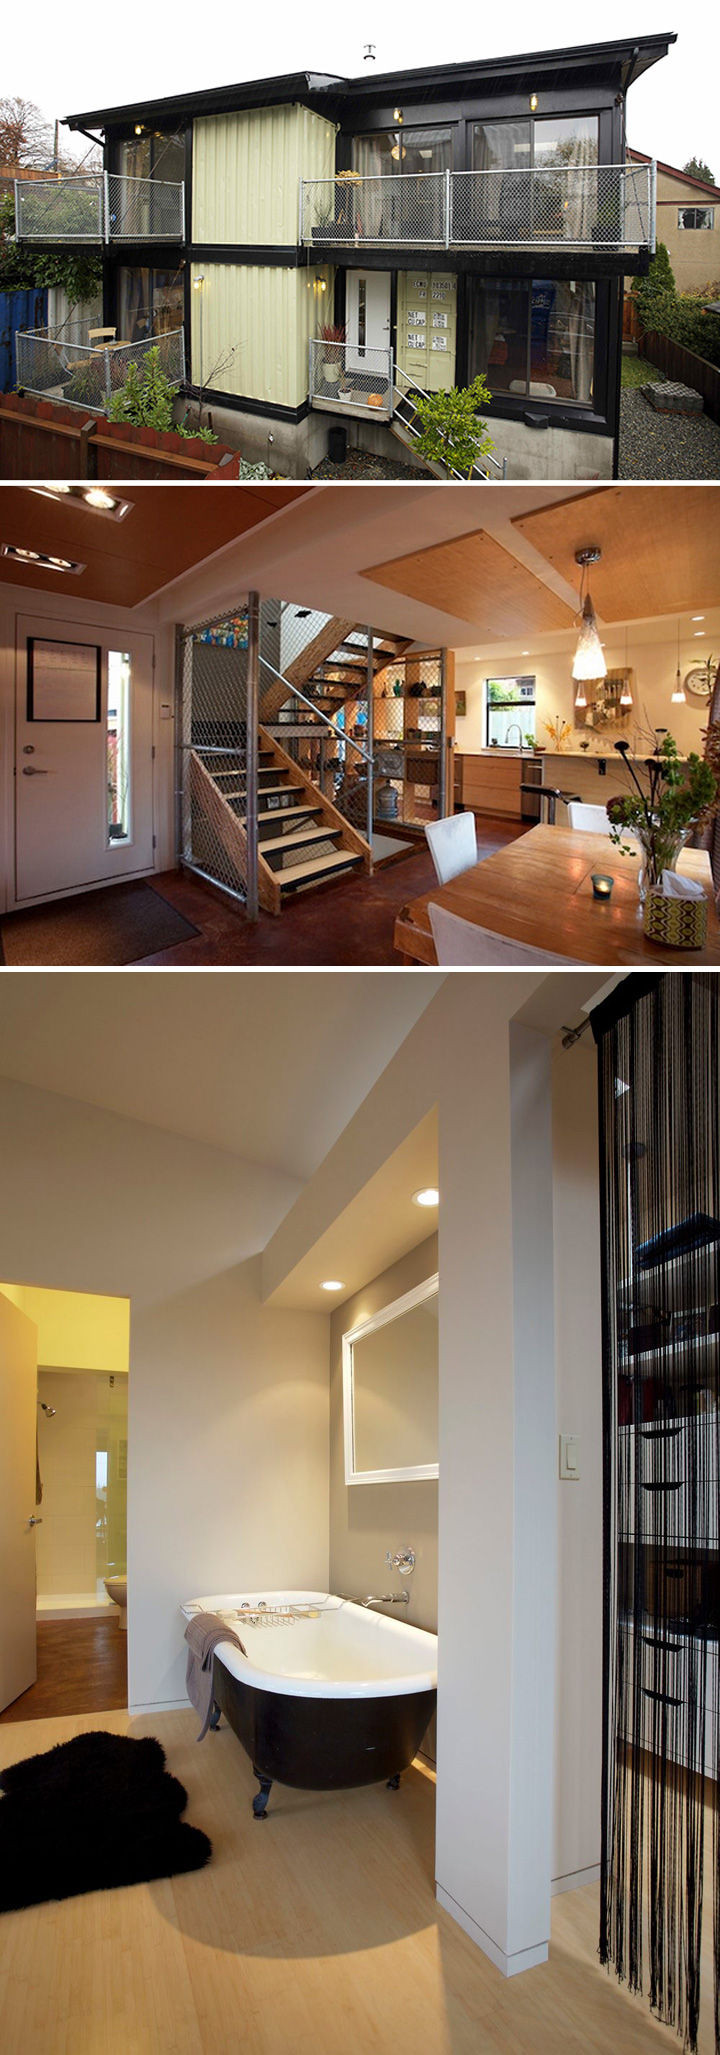 1,920 square foot Zigloo shipping container home built in Canada and designed byKeith Dewey